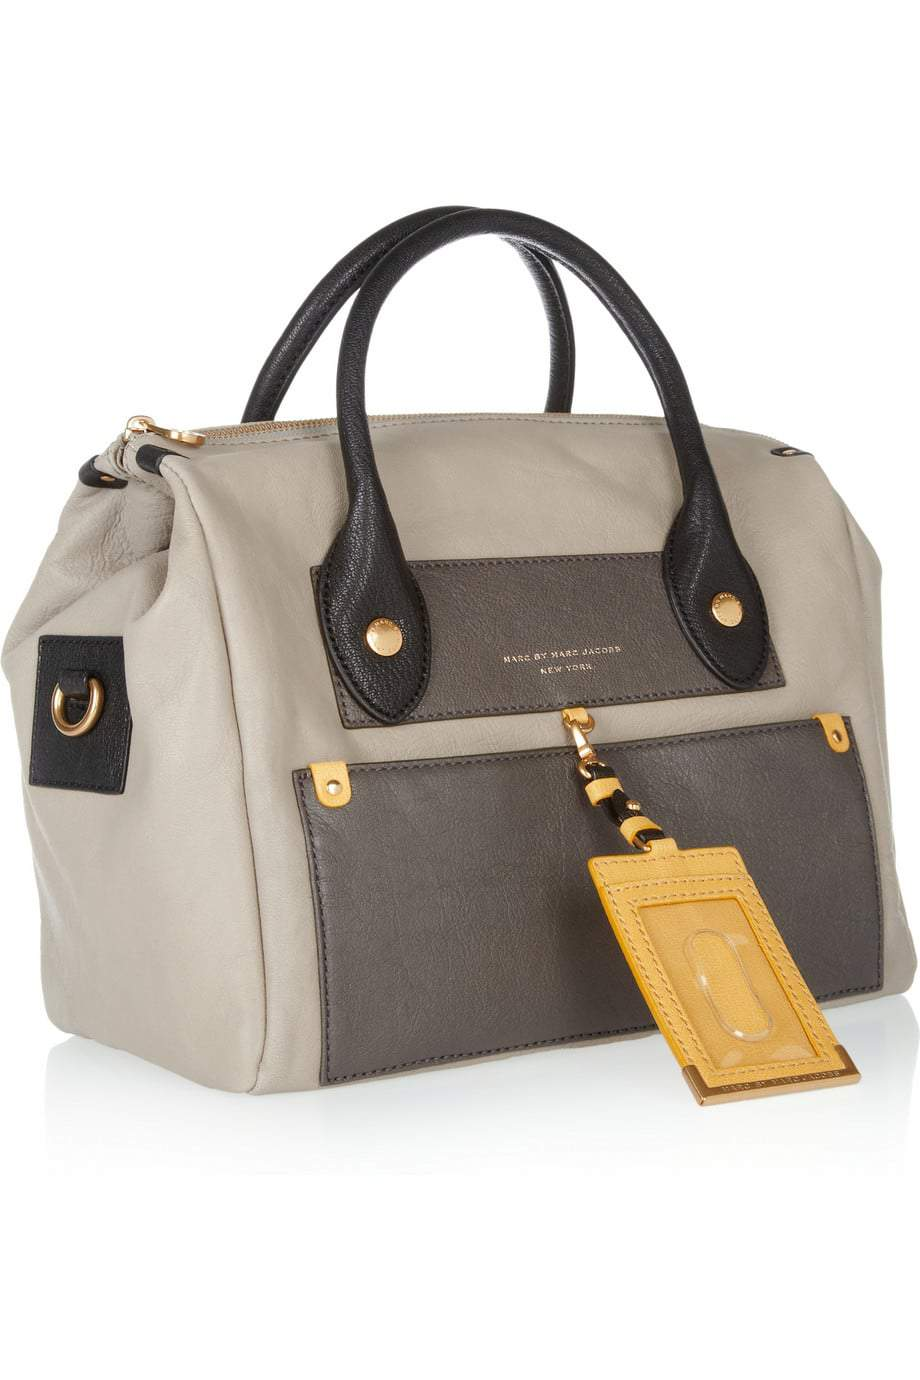 Accessorize to Maximize: Marc by Marc Jacobs Preppy Tote